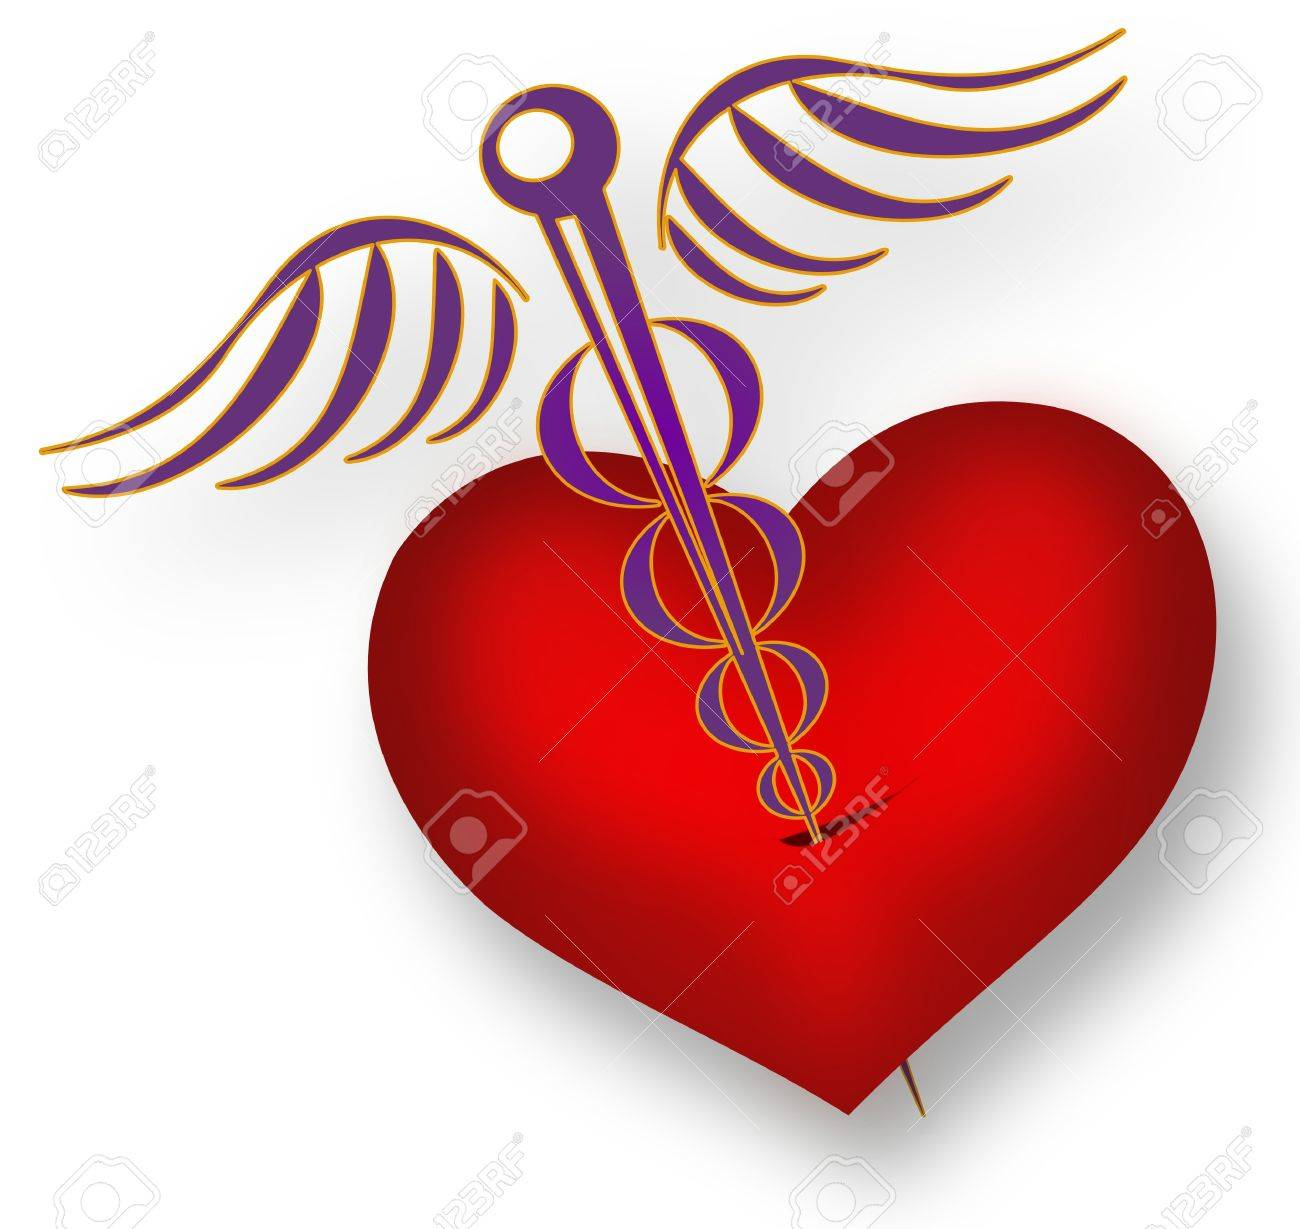 Pierced heart with the Medical symbol Caduceus separated at white background Stock Photo - 20057211